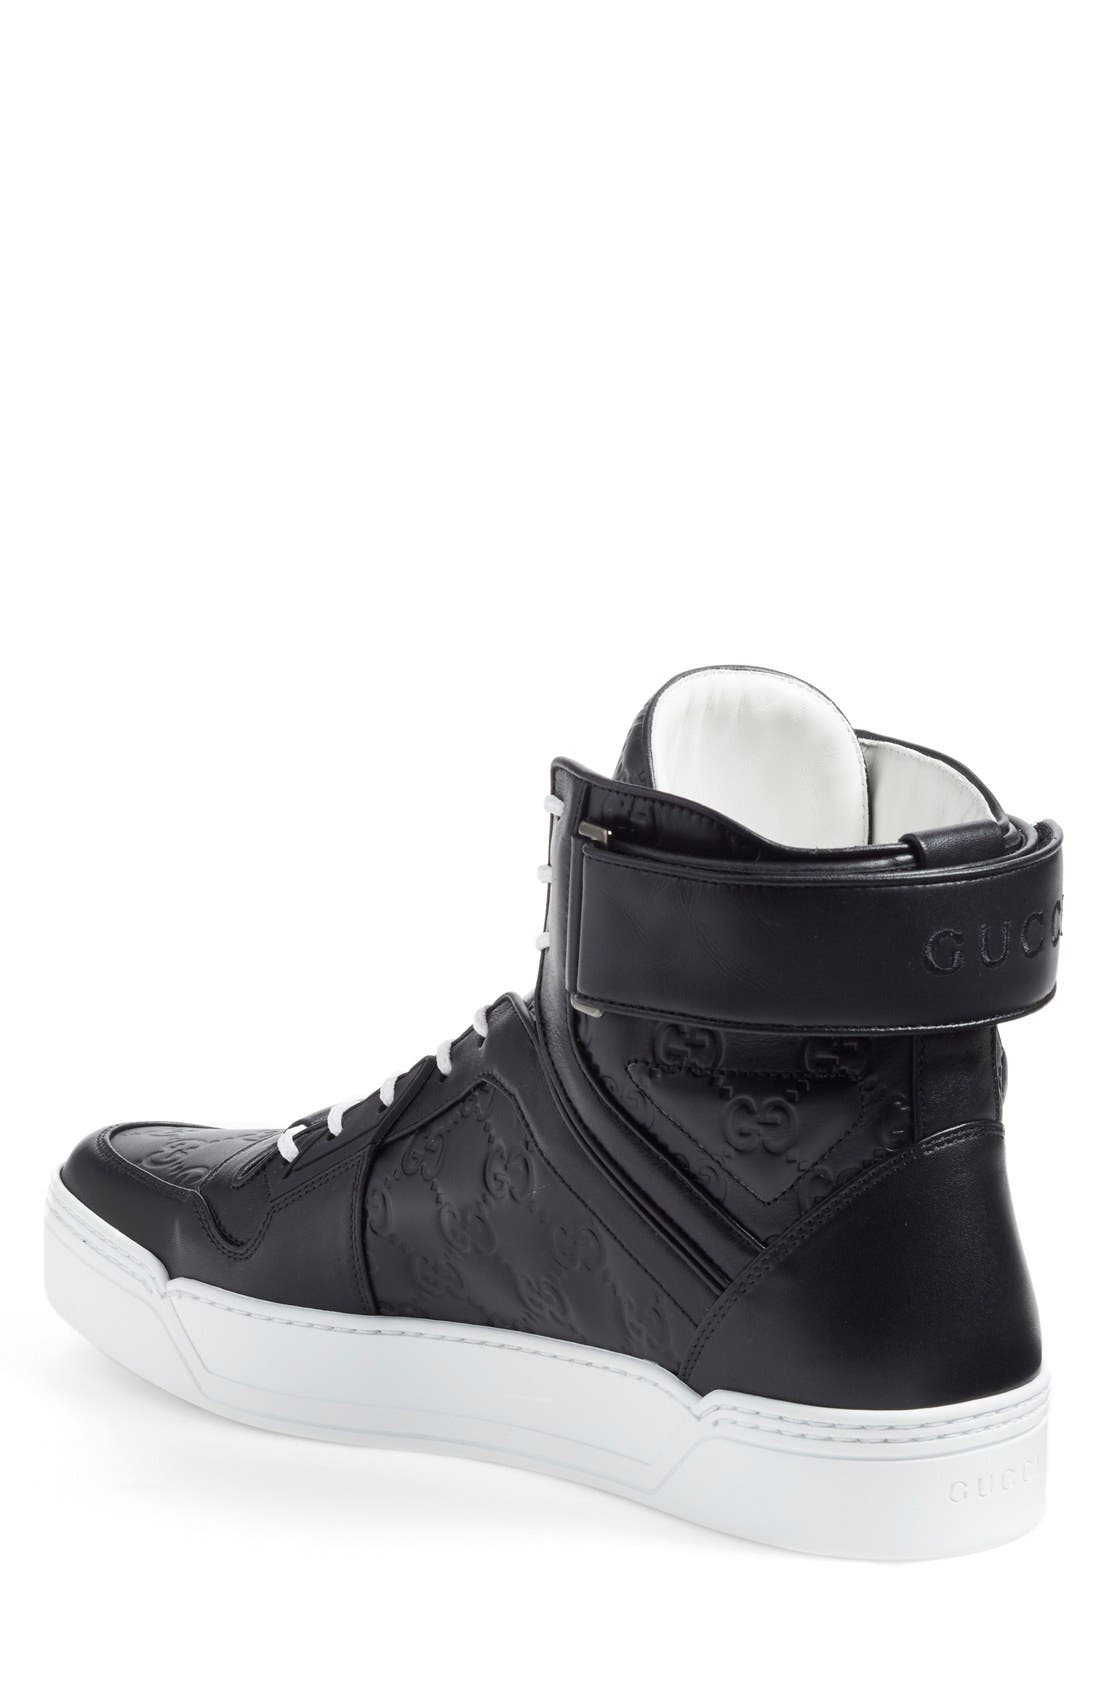 GUCCI,                             'New Basketball' High Top Sneaker,                             Alternate thumbnail 2, color,                             002